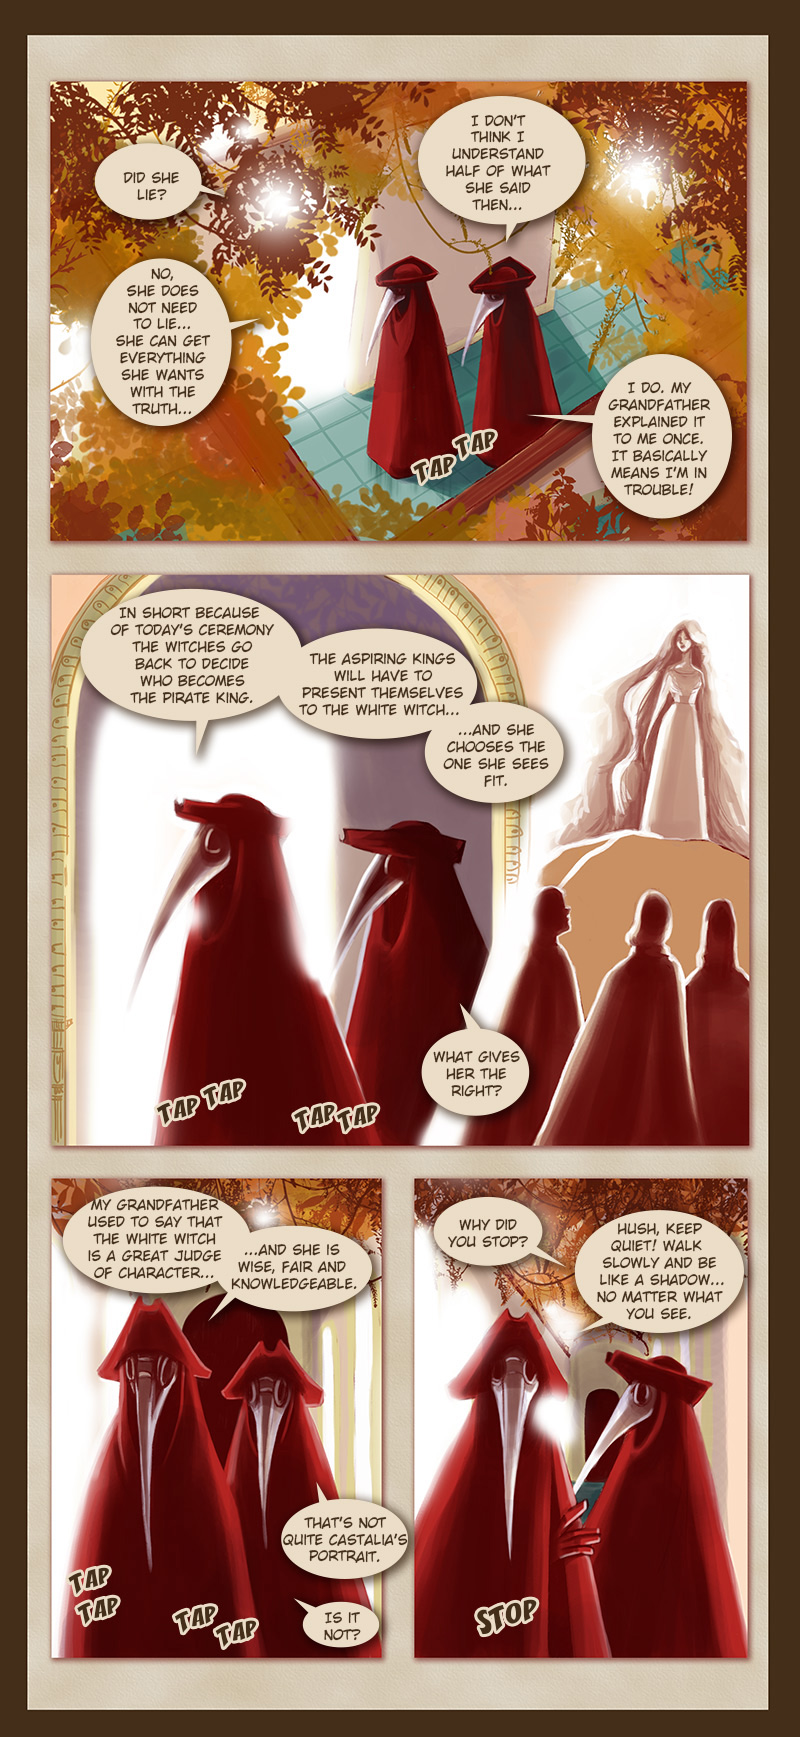 TGMS - Chapter 2 - Page 16